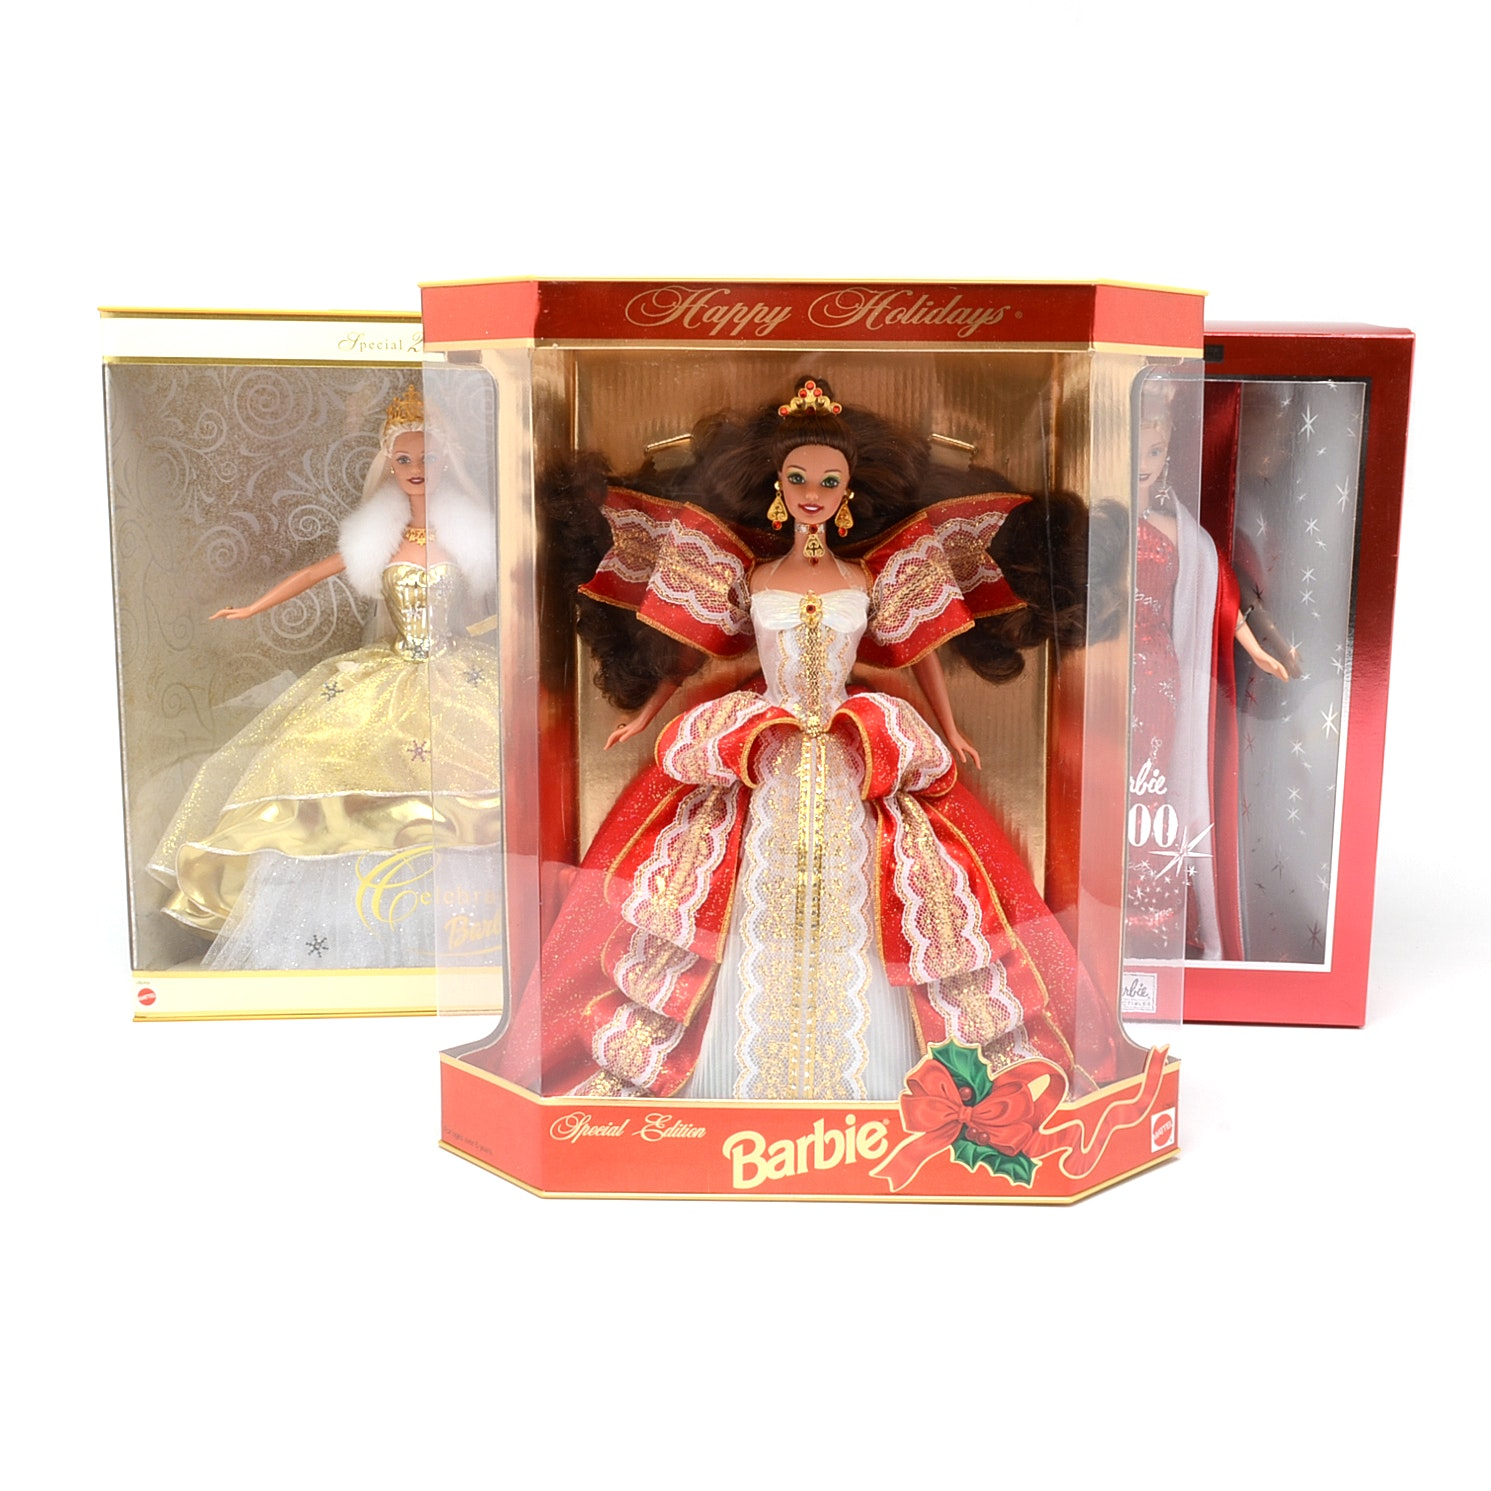 Special Edition Barbie Doll Collection